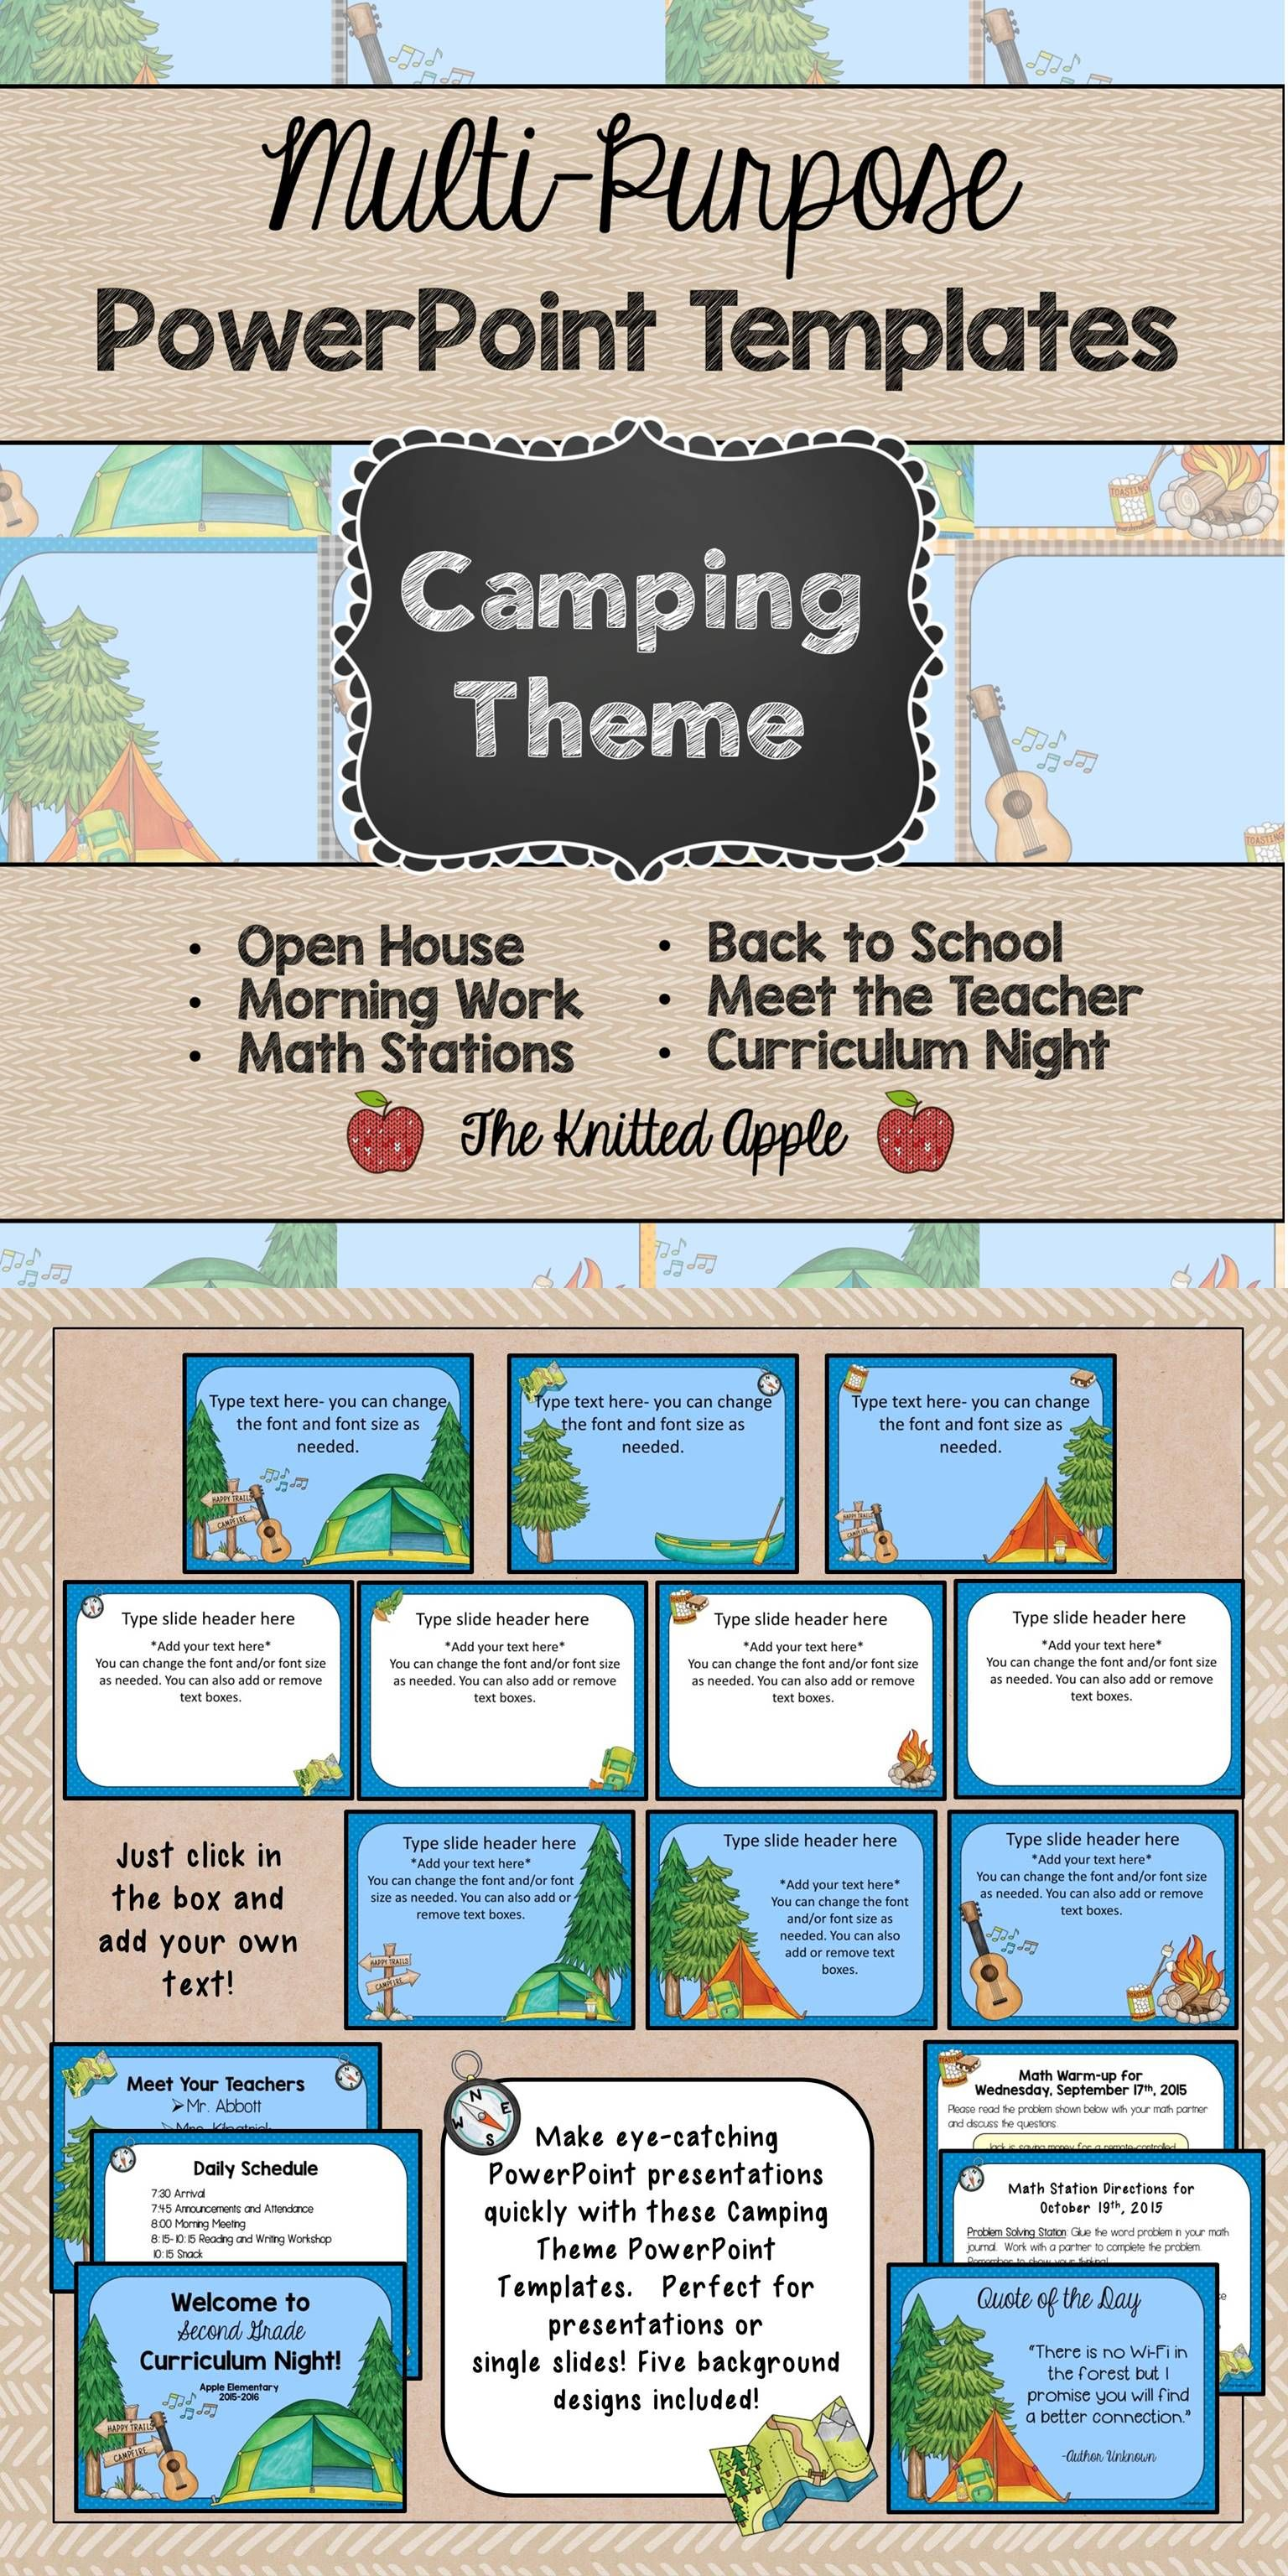 Gmail theme fox - Camping Theme Powerpoint Templates For Your Camping Theme Classroom Perfect For Open House Curriculum